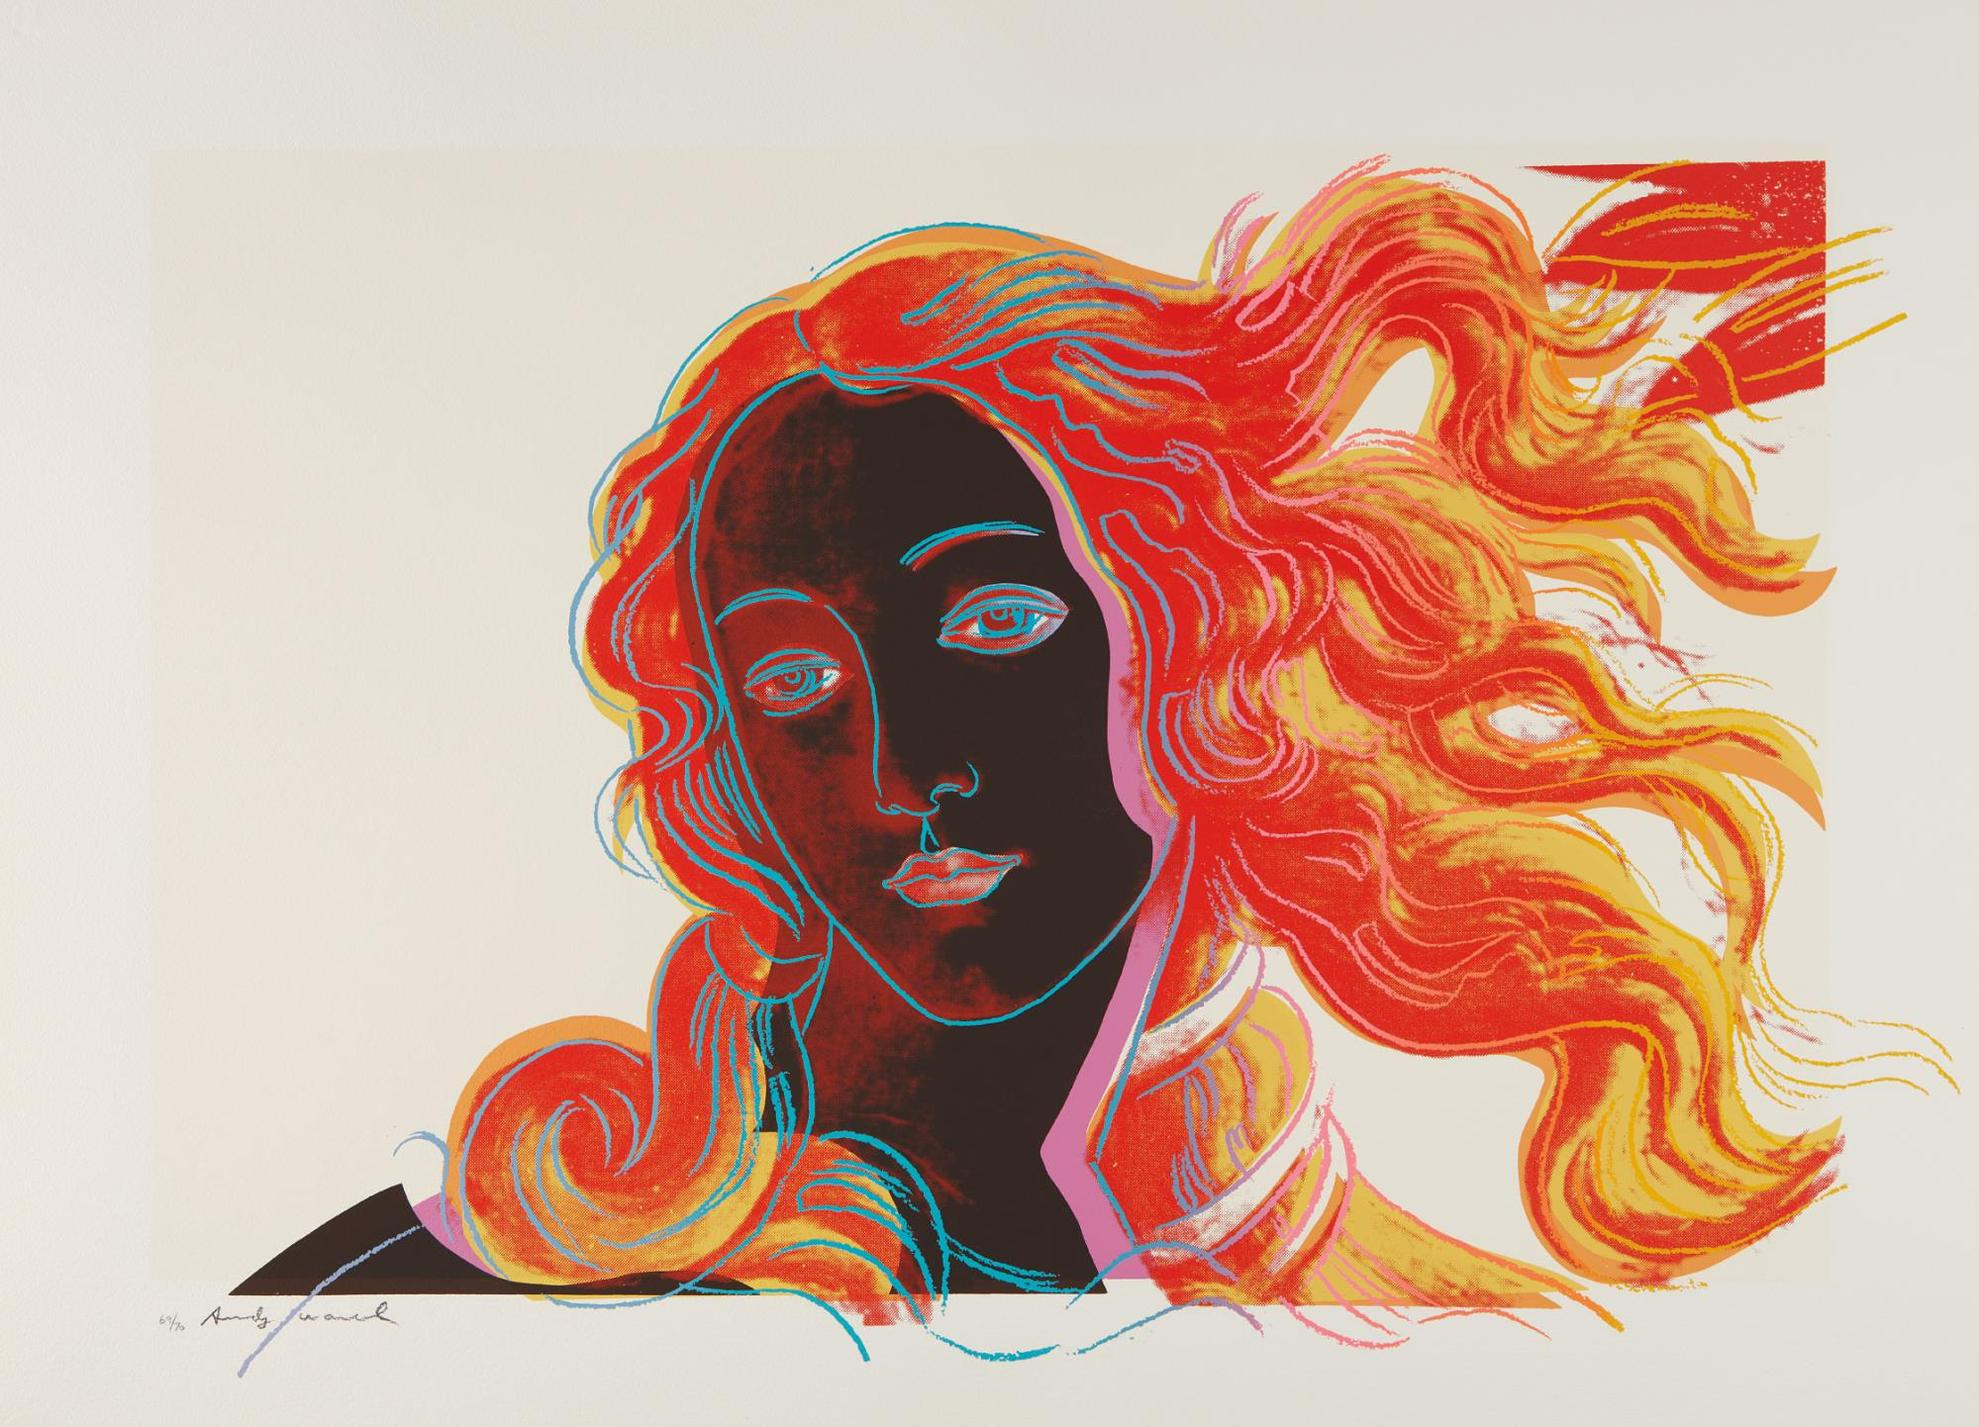 Andy Warhol-Sandro Botticelli, Birth Of Venus, 1482, From Details Of Renaissance Paintings-1984